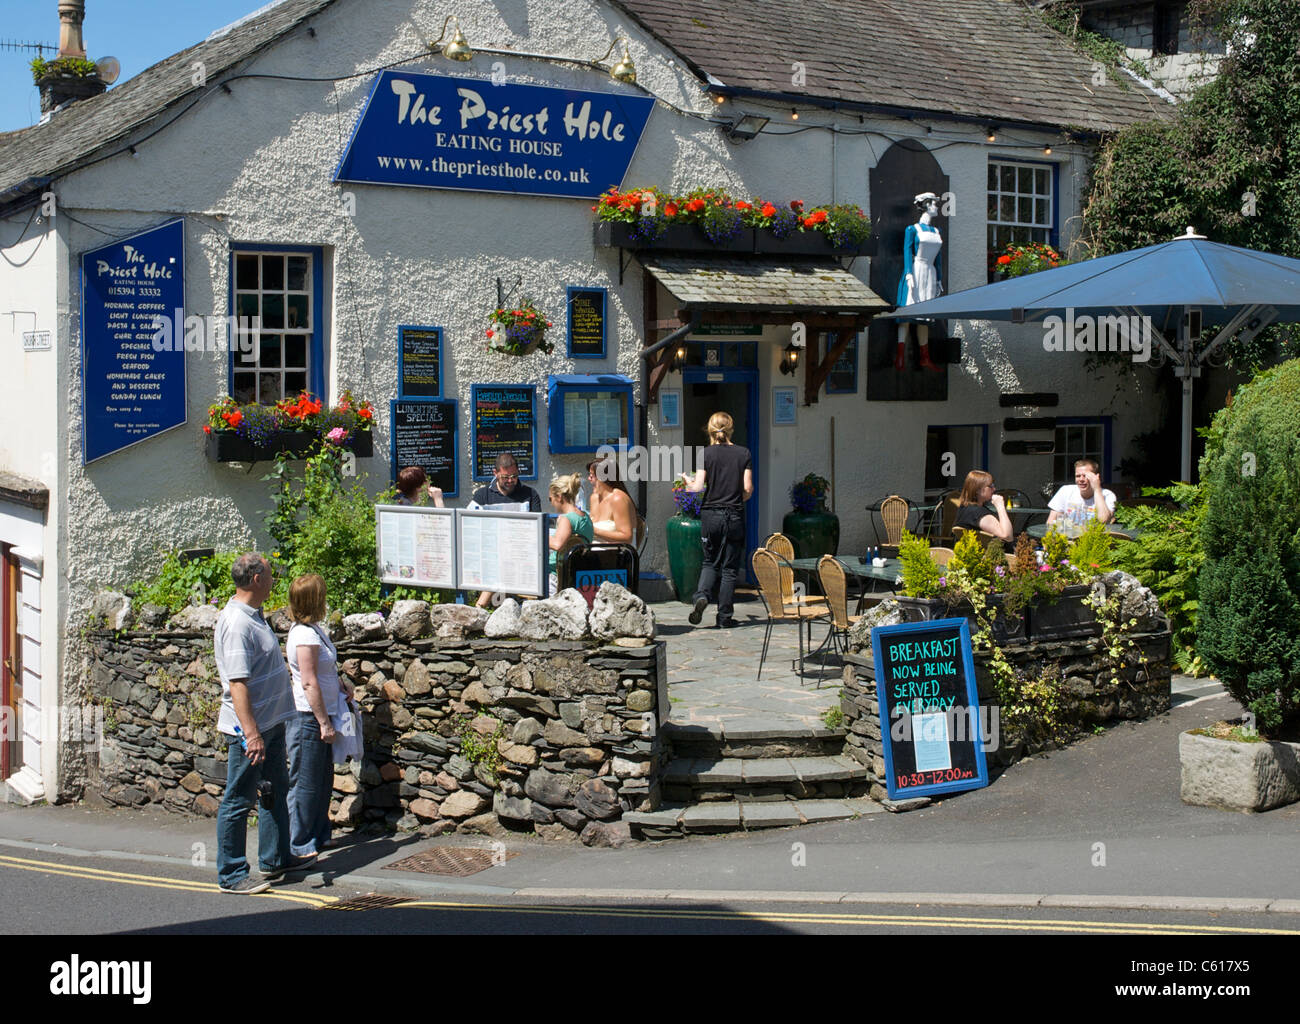 The Priest Hole restaurant, Ambleside, Lake District National Park, Cumbria, England UK - Stock Image